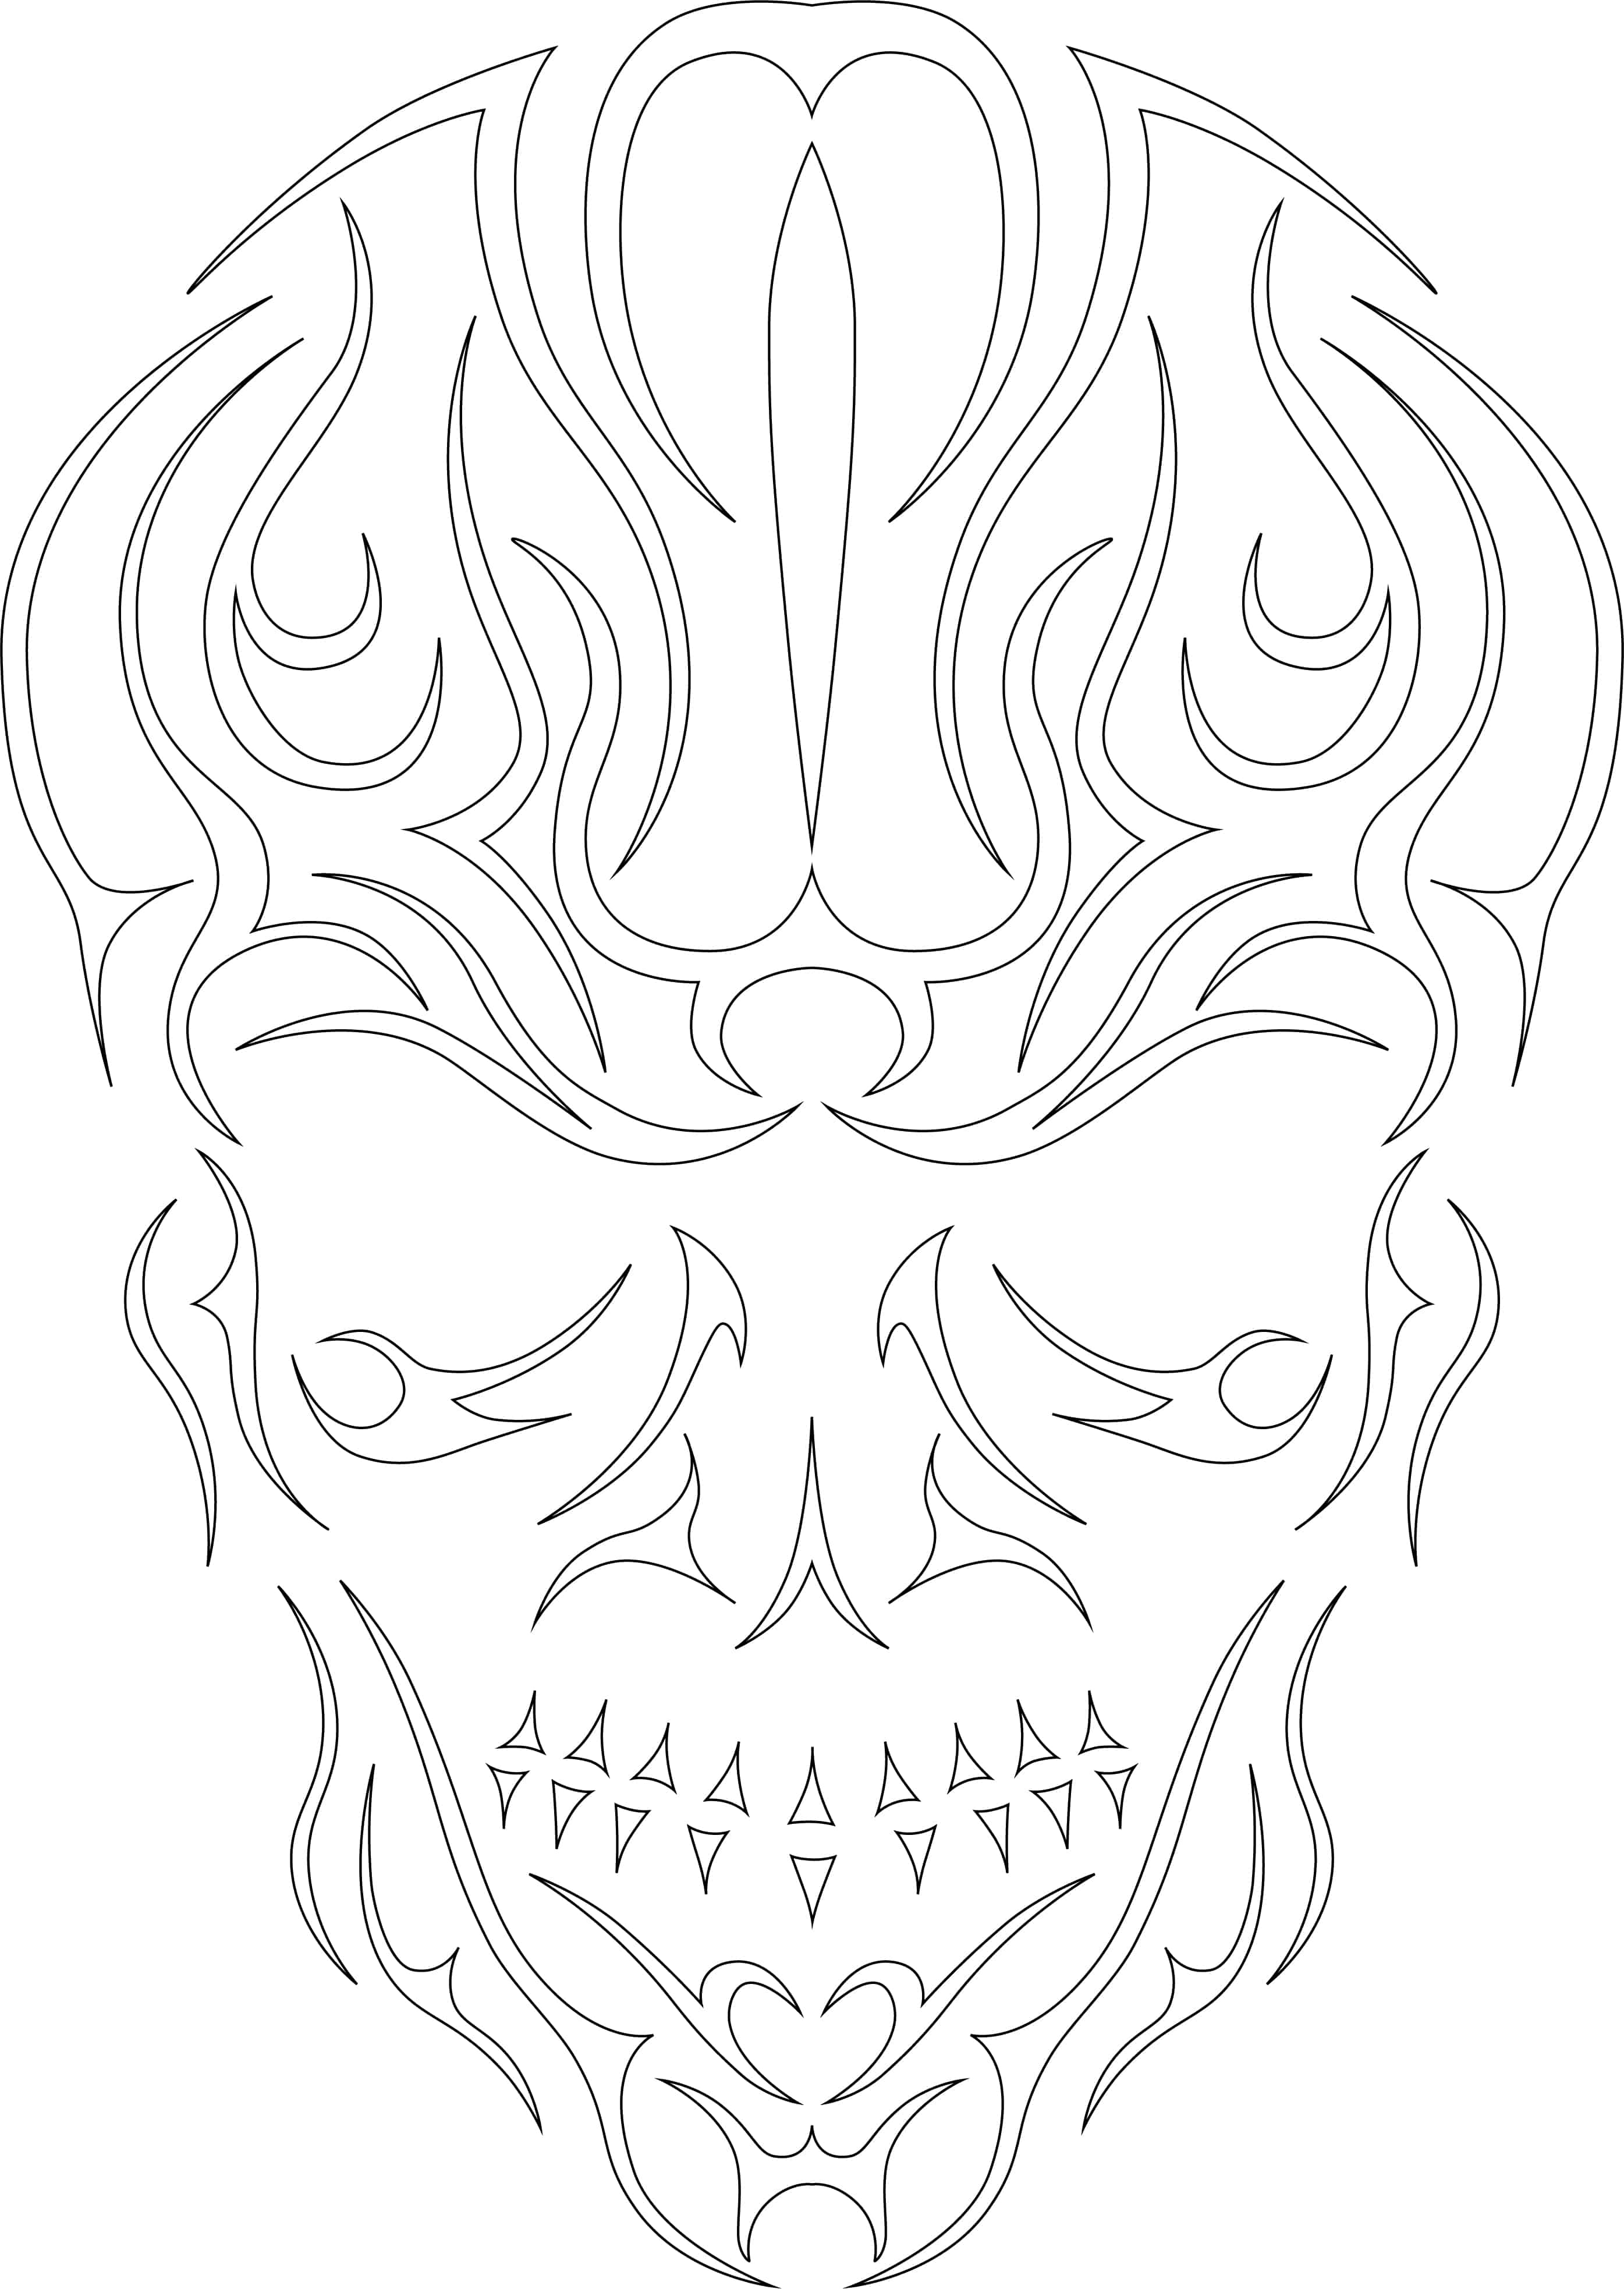 Vectorized abstract skull with outlines